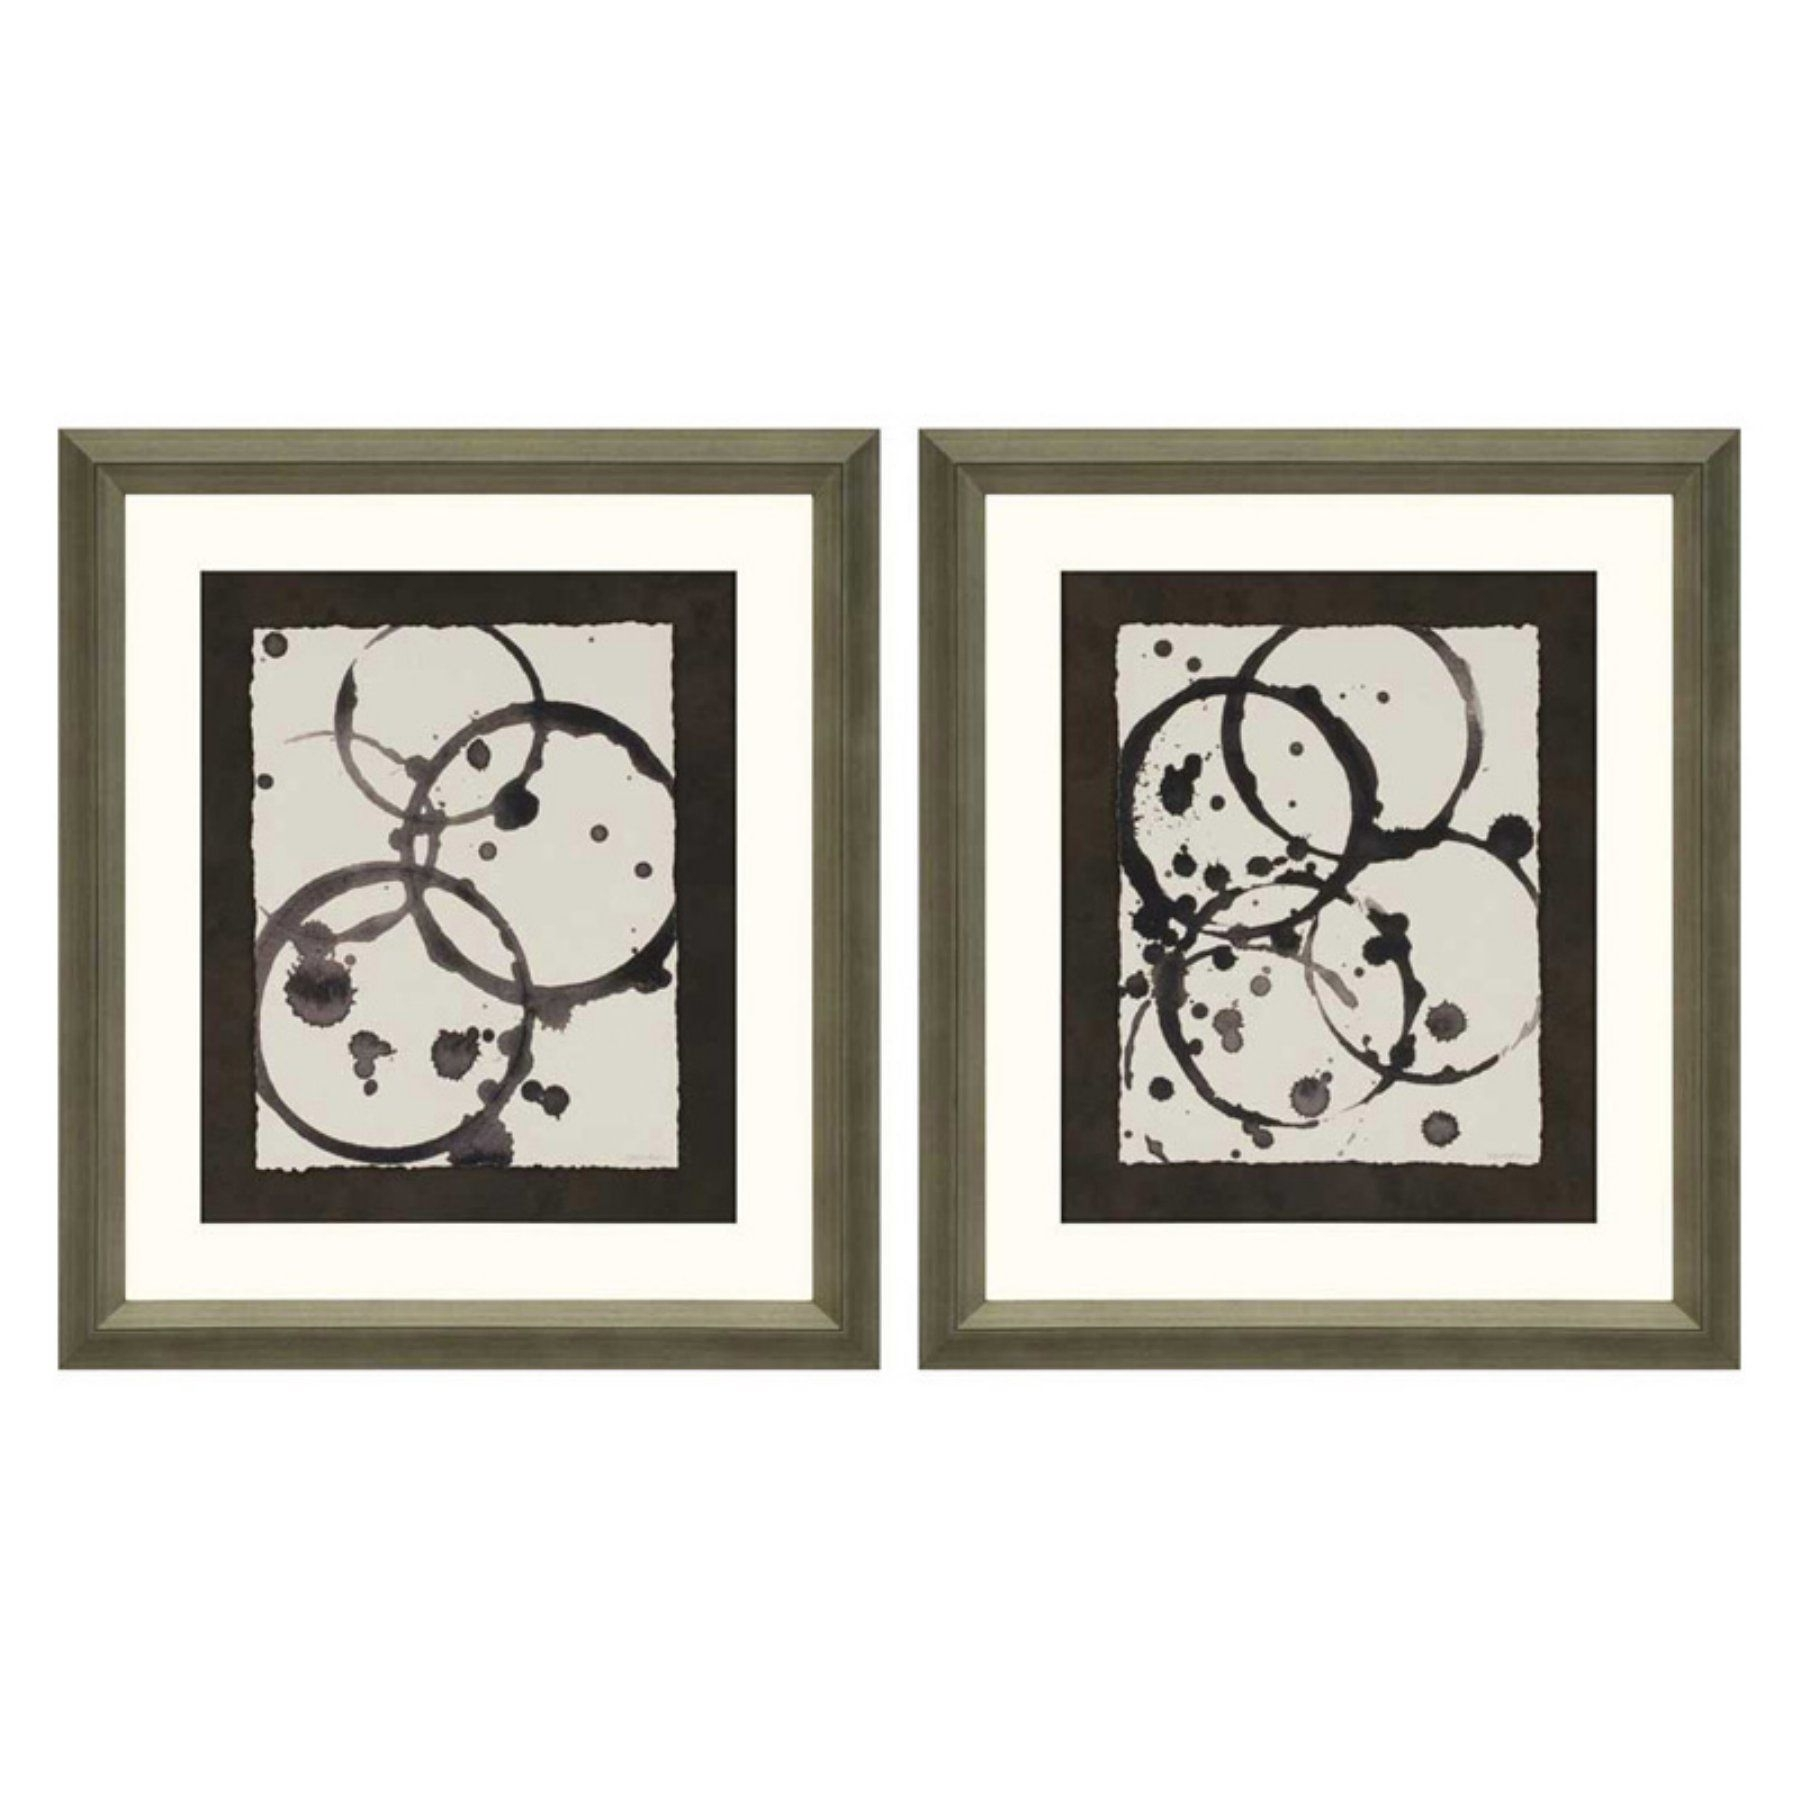 Paragon Decor Astro Burst Ii Framed Wall Art – Set Of 2 – 7943 Intended For Set Of 2 Framed Wall Art (View 11 of 20)